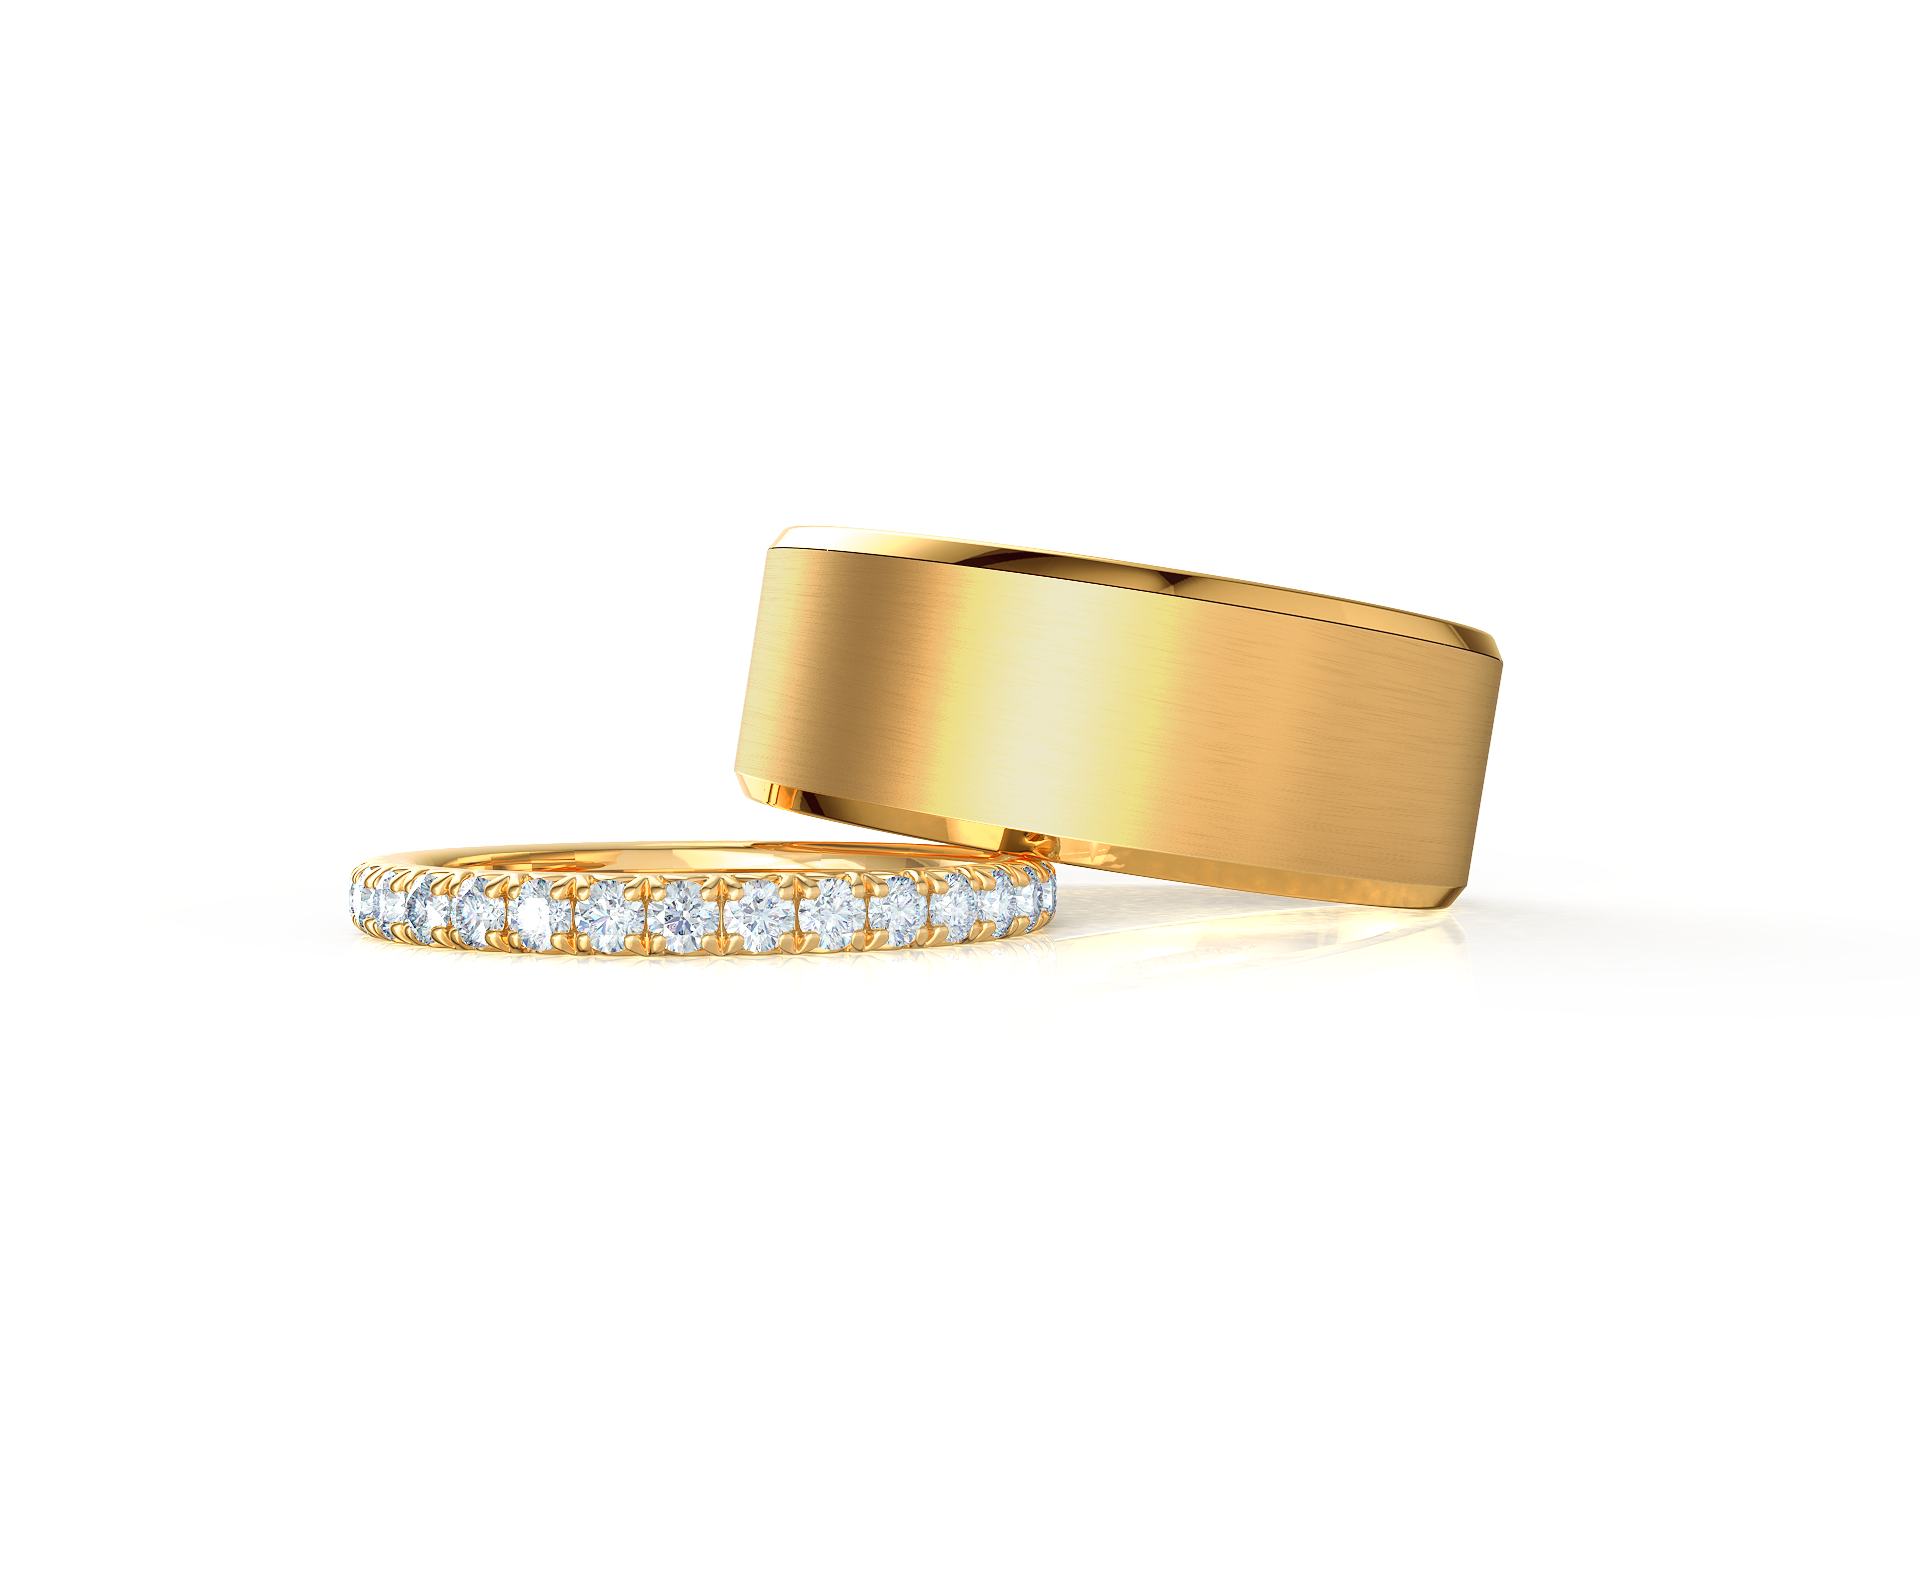 Pair your Matte Beveled Ring with a French Pavé Eternity Band    Shop Now